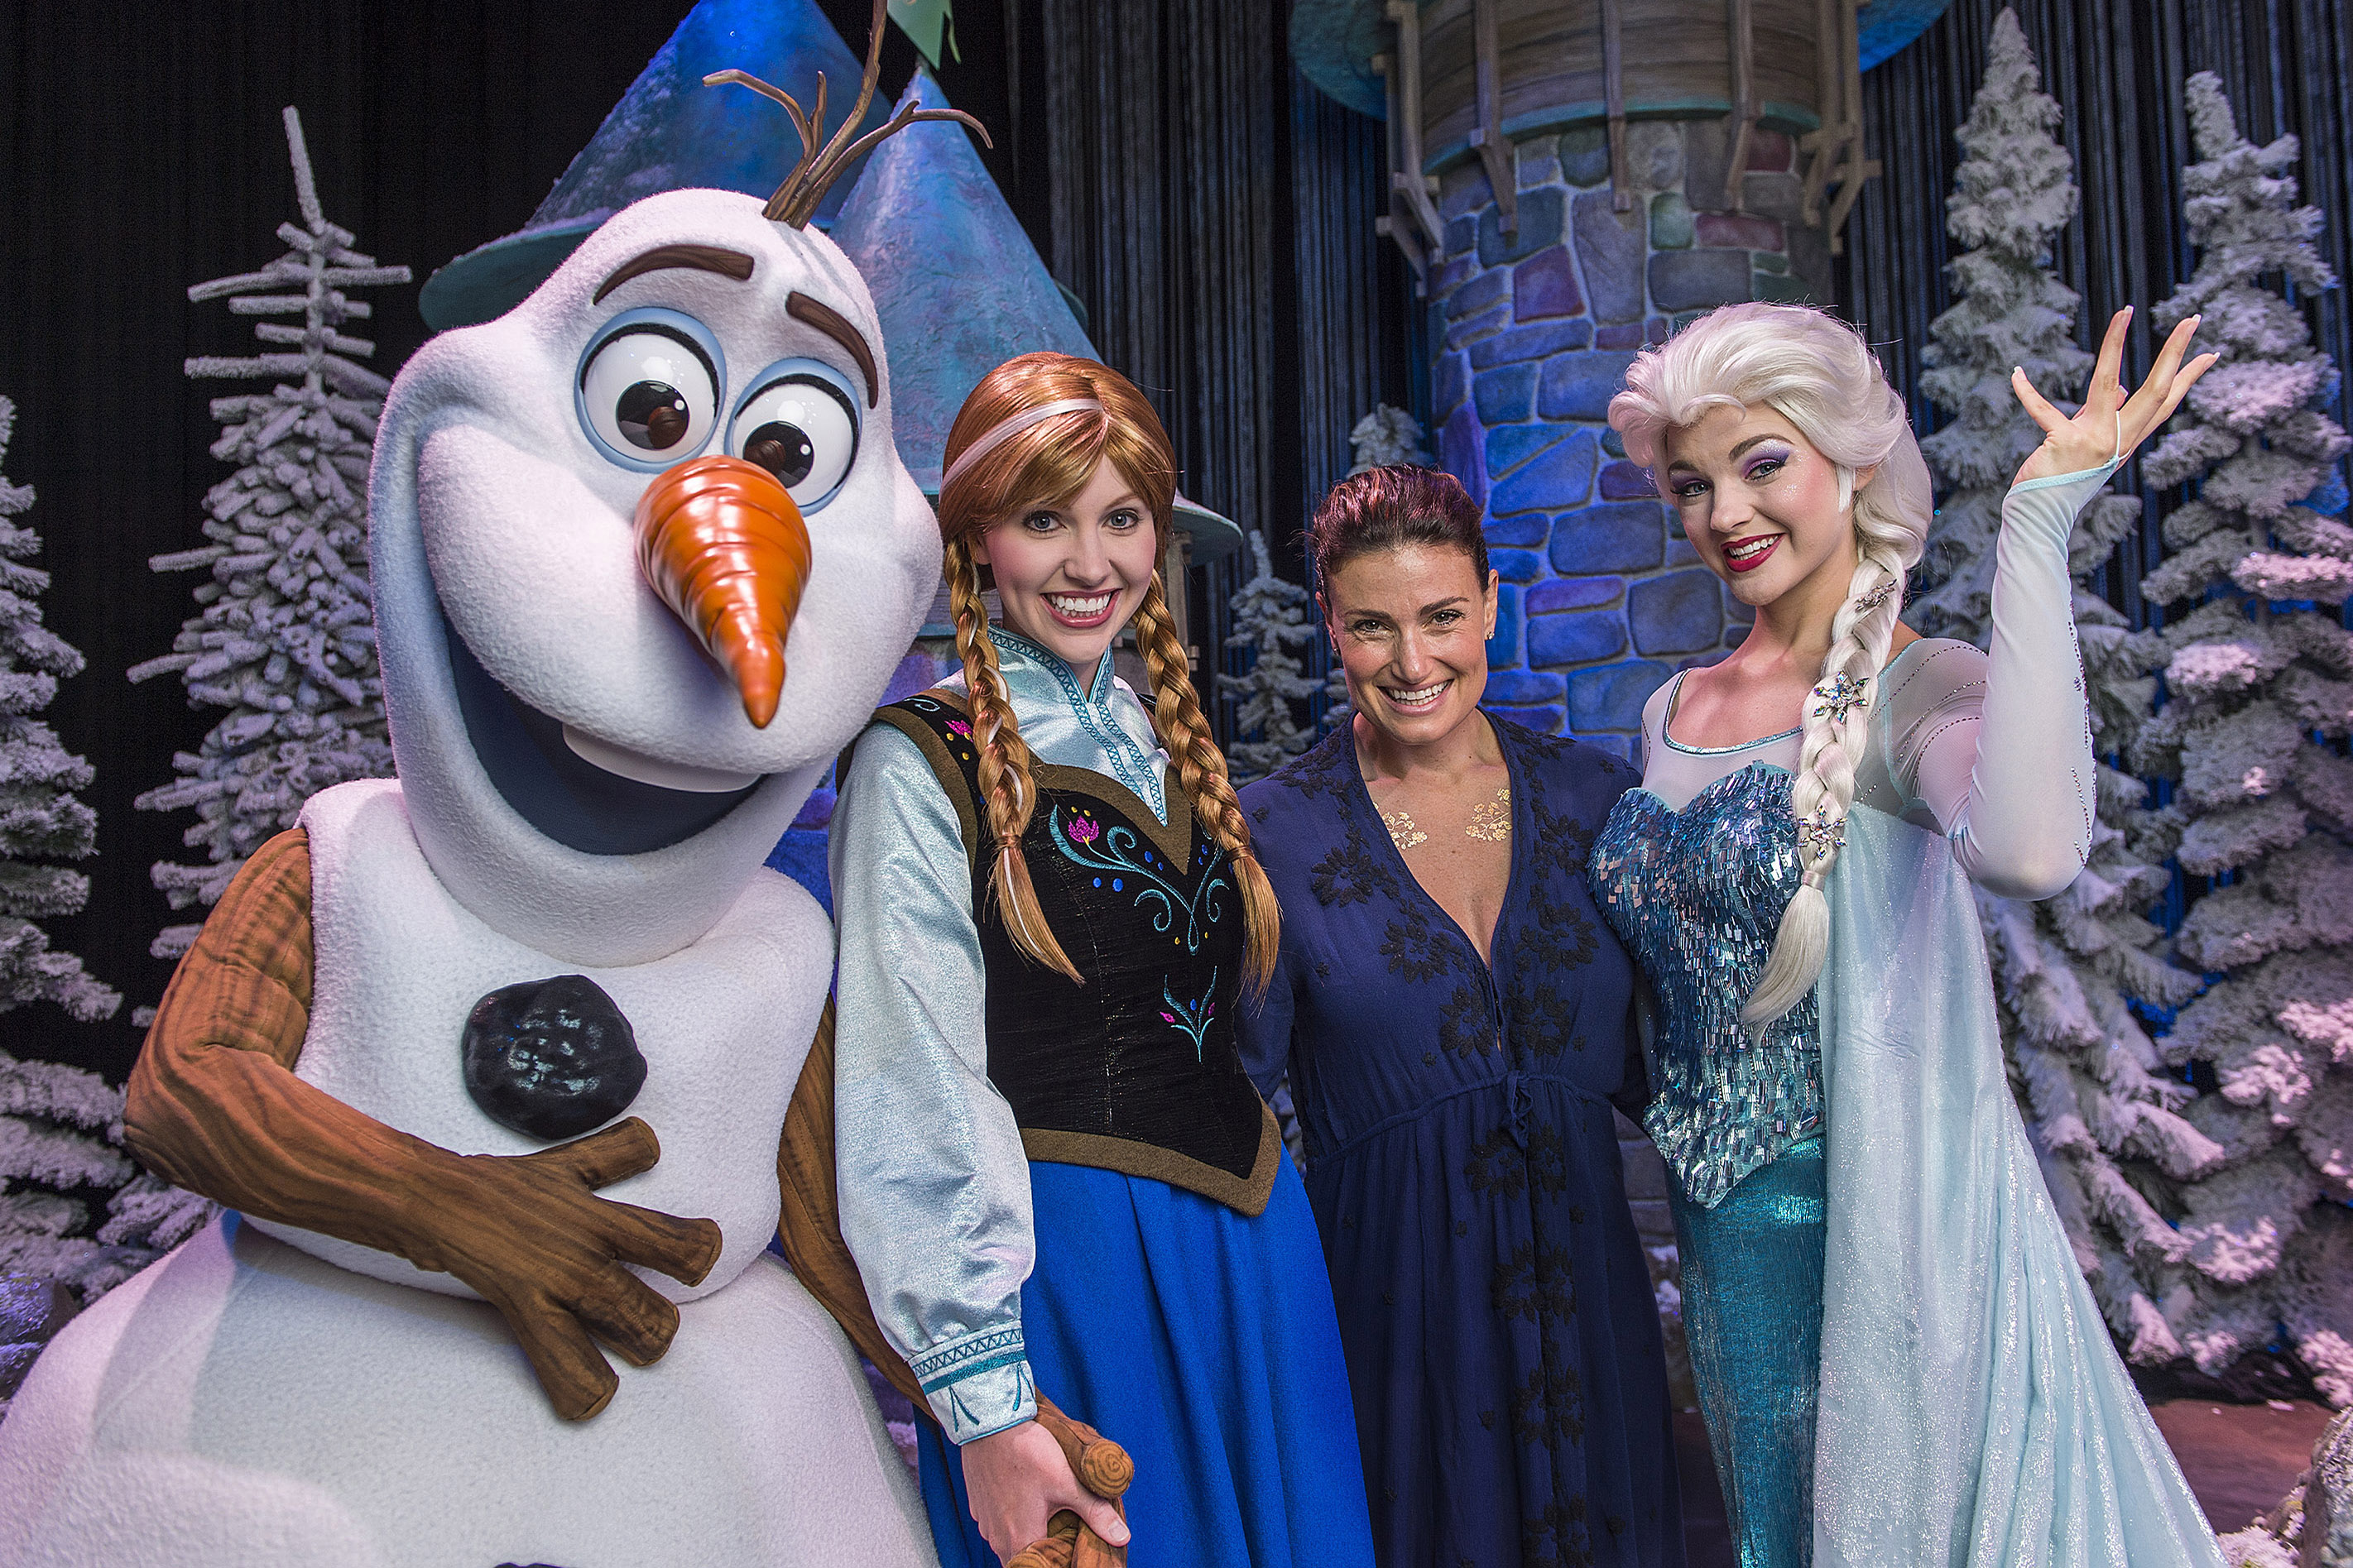 In this handout image provided by Disney Parks, Tony Award-winning actress and singer Idina Menzel poses on July 28, 2015 with Elsa, Anna and Olaf from Disney's  Frozen  during  Frozen Summer Fun  at Disney's Hollywood Studios theme park in Lake Buena Vista, Florida. Menzel took a break from her world tour to visit Walt Disney World Resort.